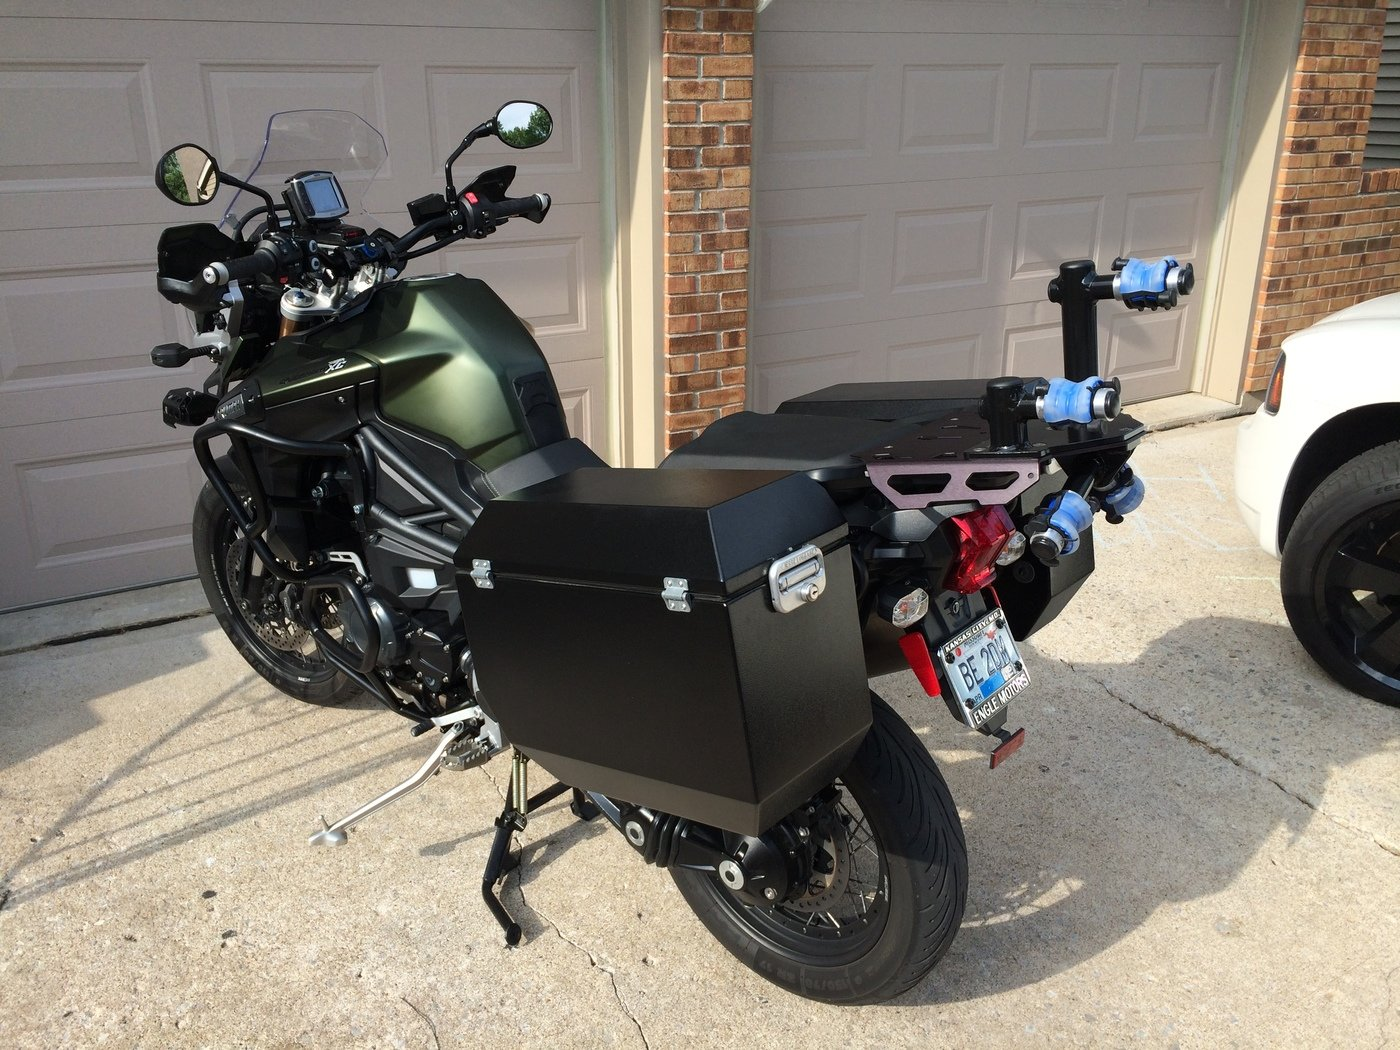 bicycle rack for motorcycle by jamie hall at coroflot com